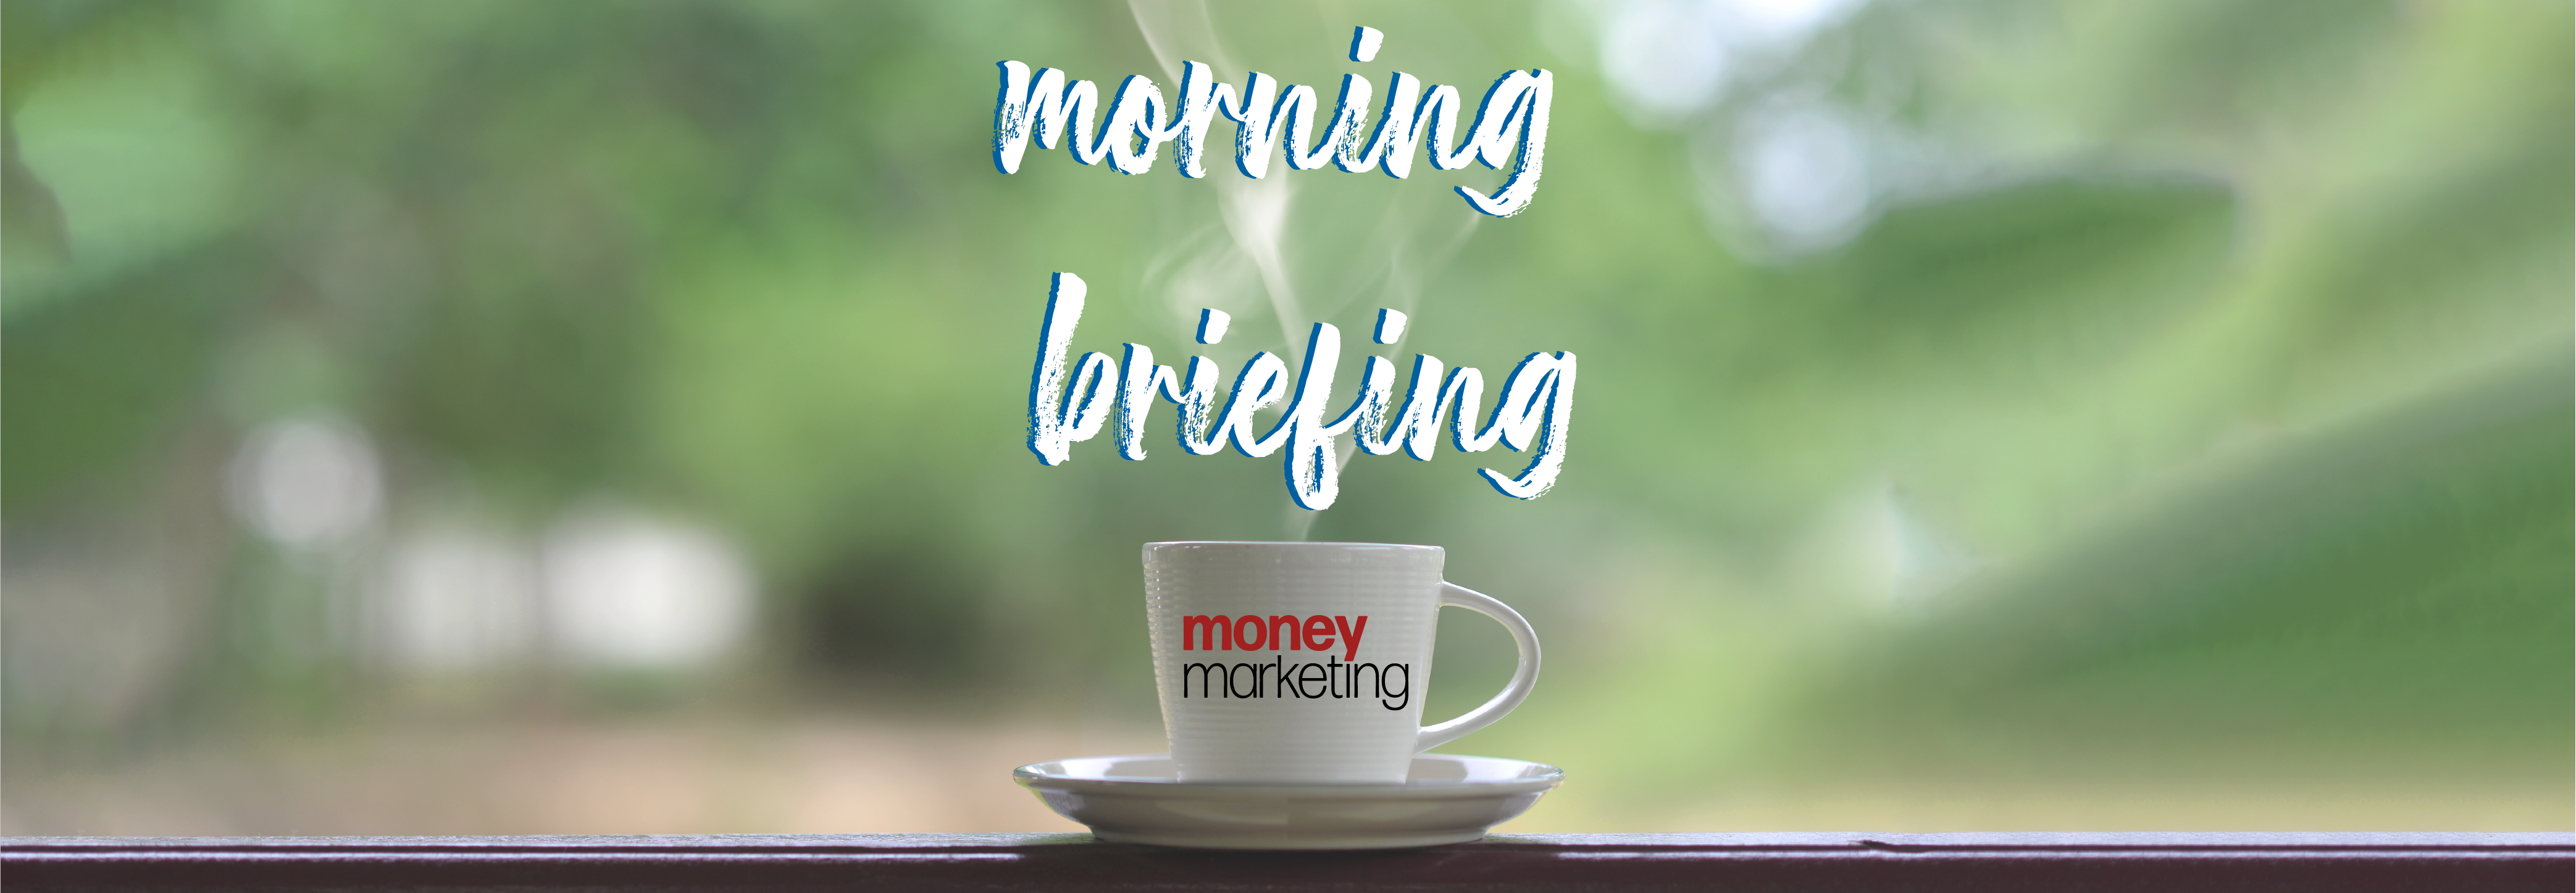 The Morning Briefing: Hubwise's ambitions; Gilbert makes moves